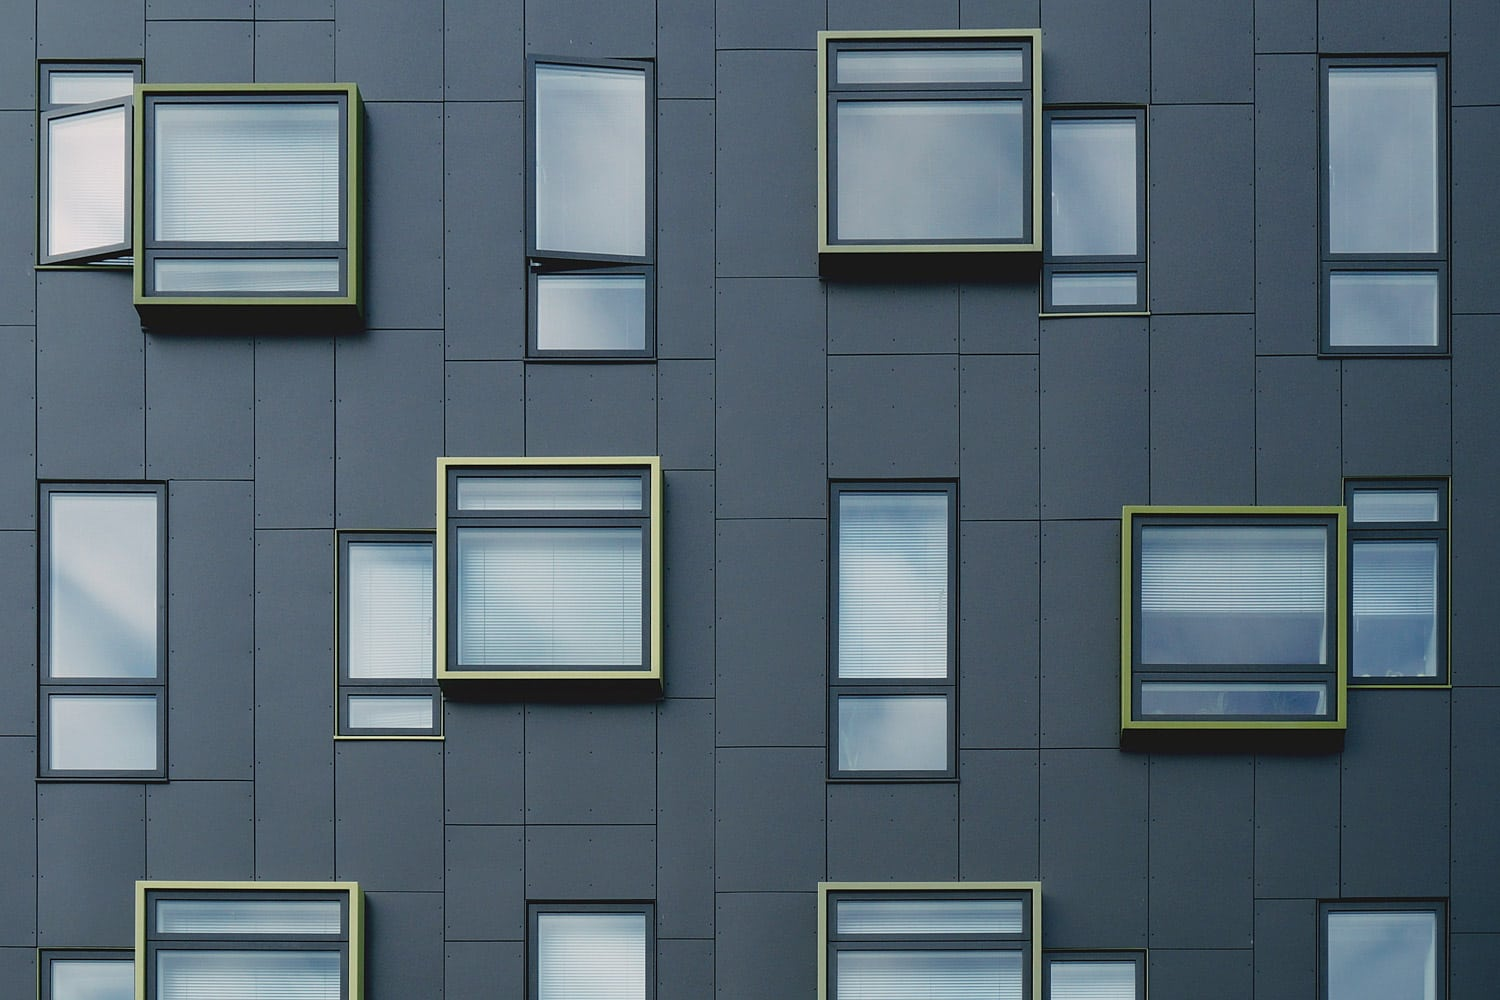 Window Tinting for your Office and Commercial Building reduces your environmental footprint, protect your workforce and assets, whilst saving you money.